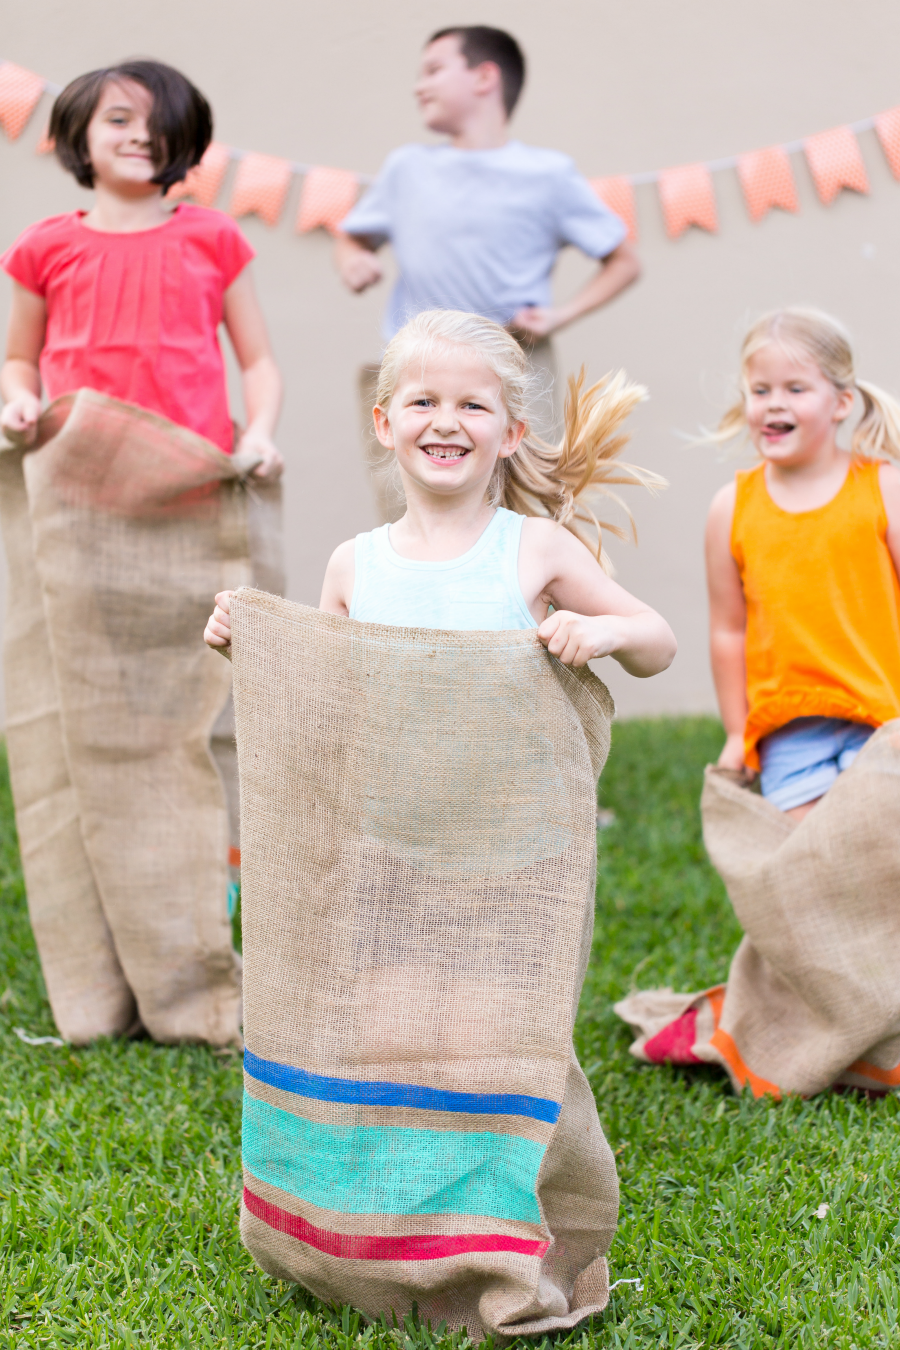 Classic! Potato Sack Races for kids, I'm going to remember this site for summer